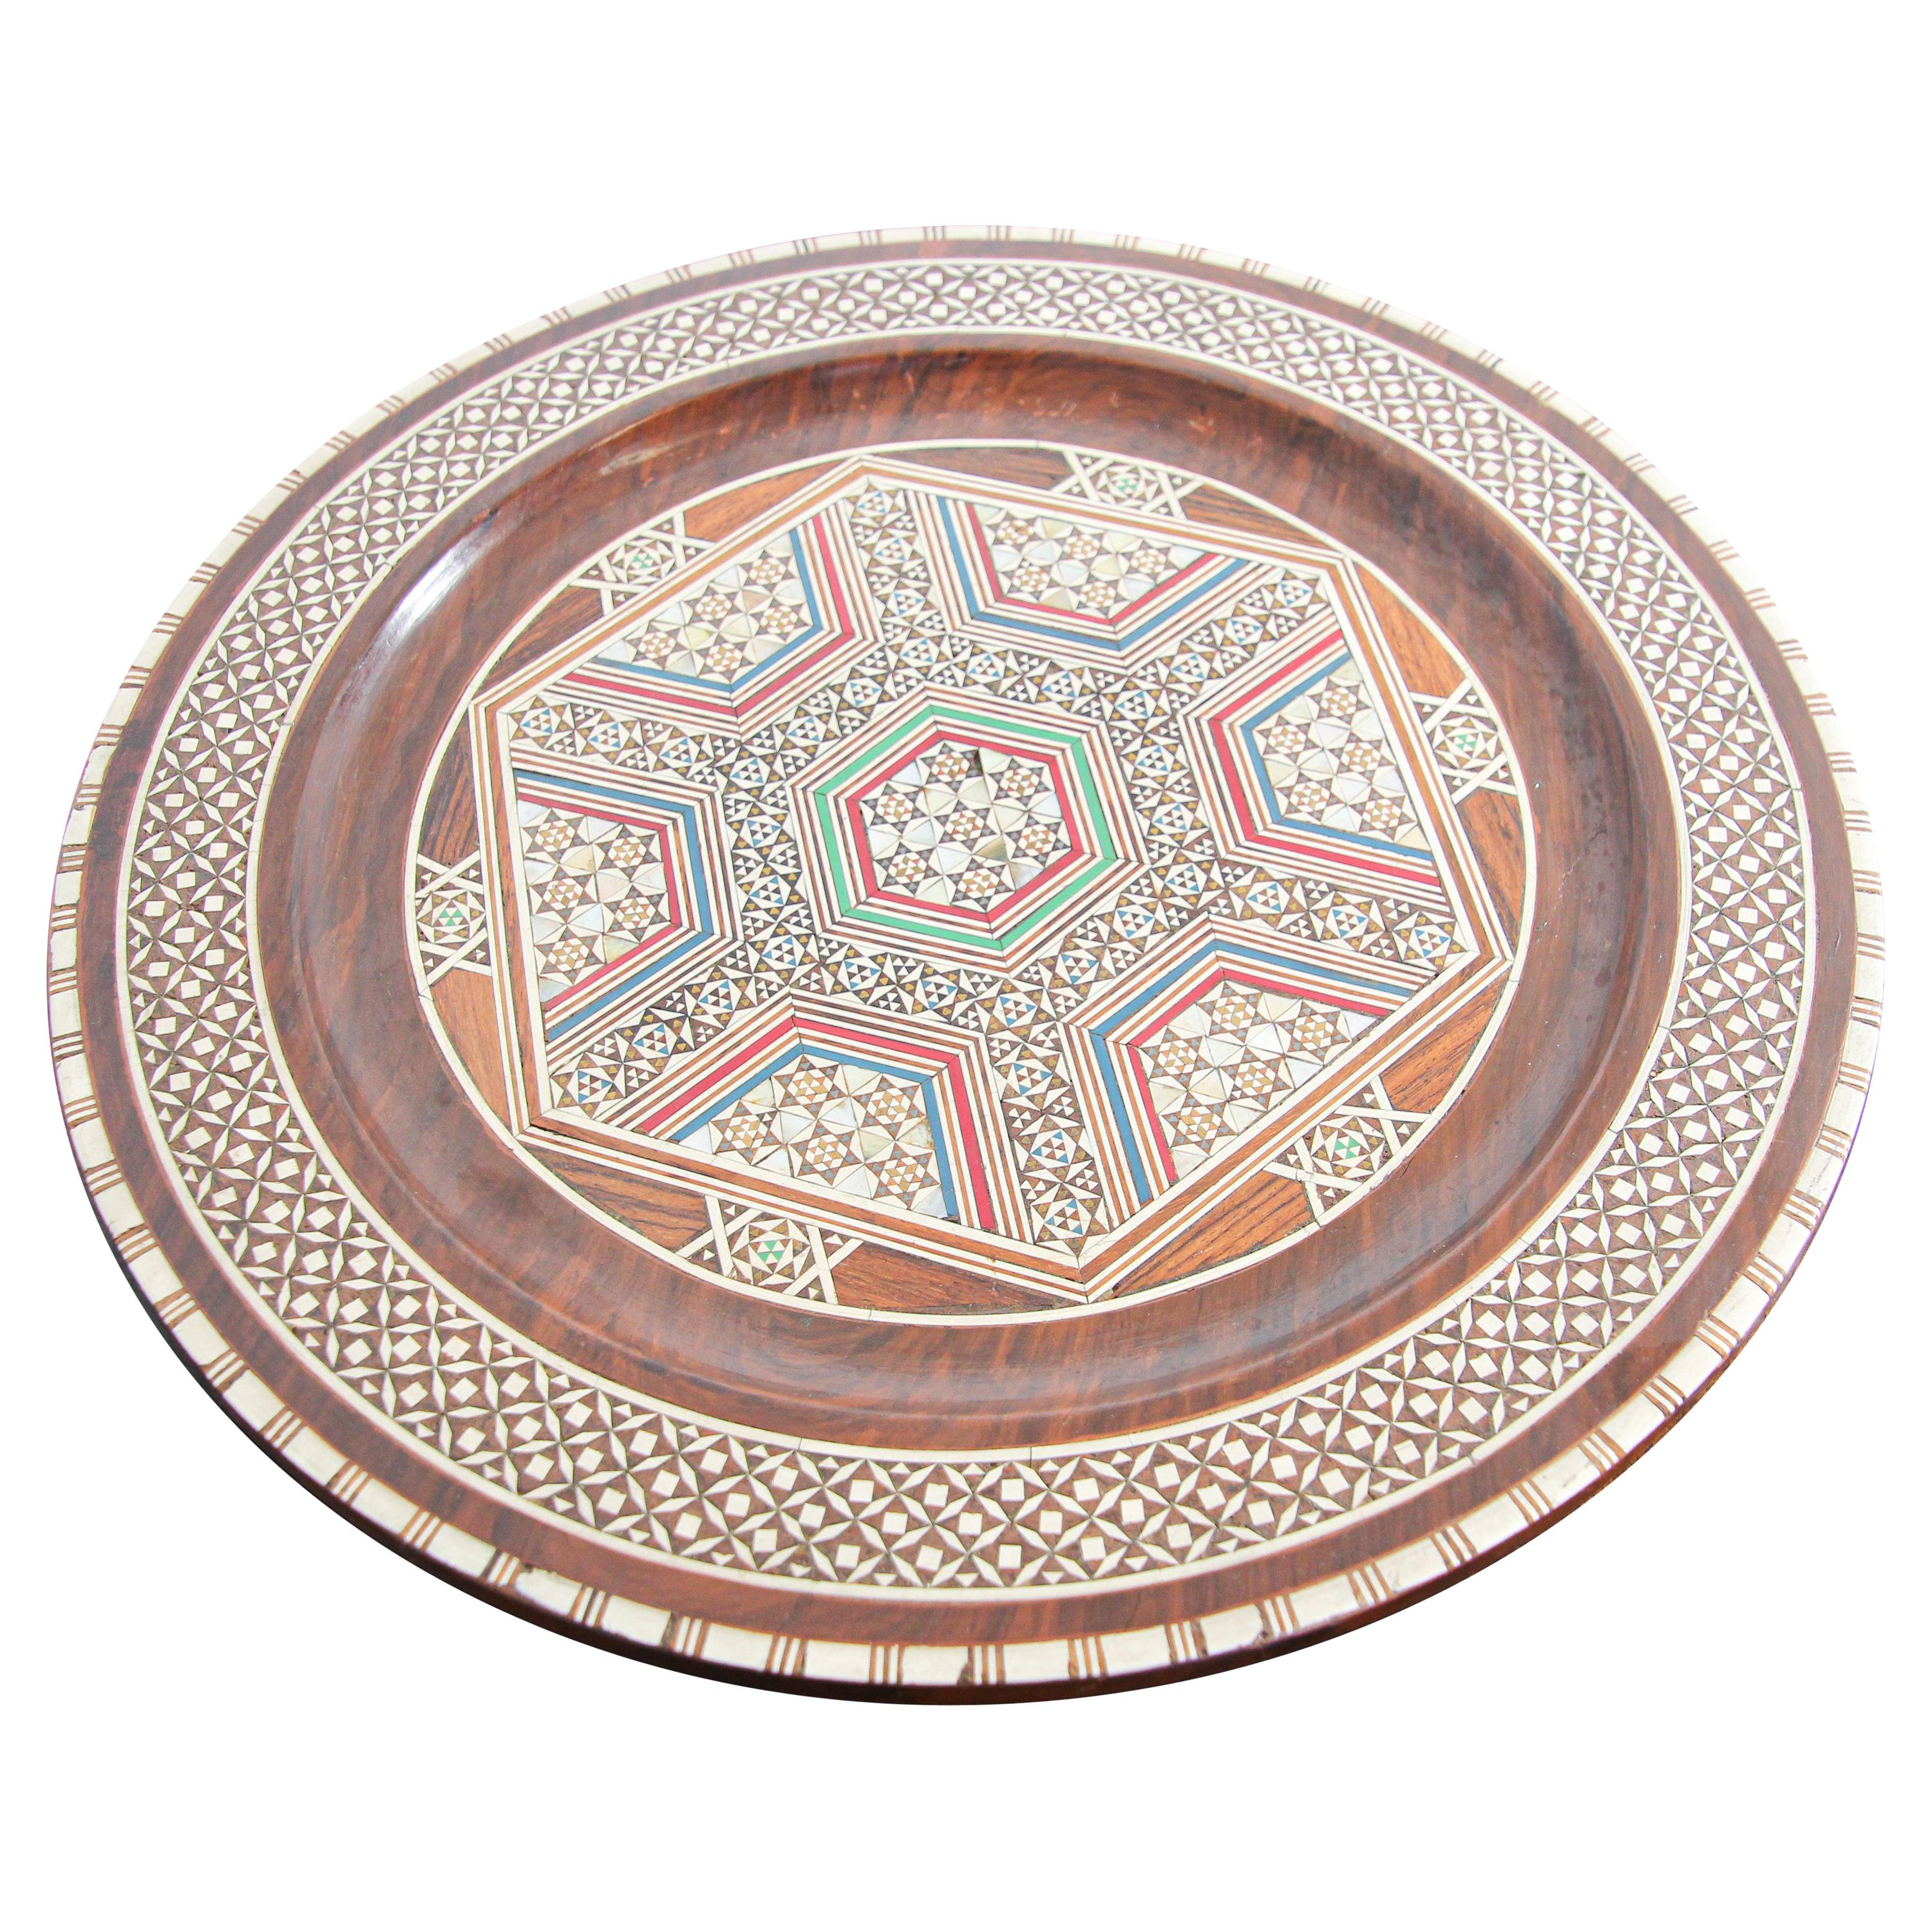 Middle Eastern Egyptian Inlaid Marquetry Decorative Platter